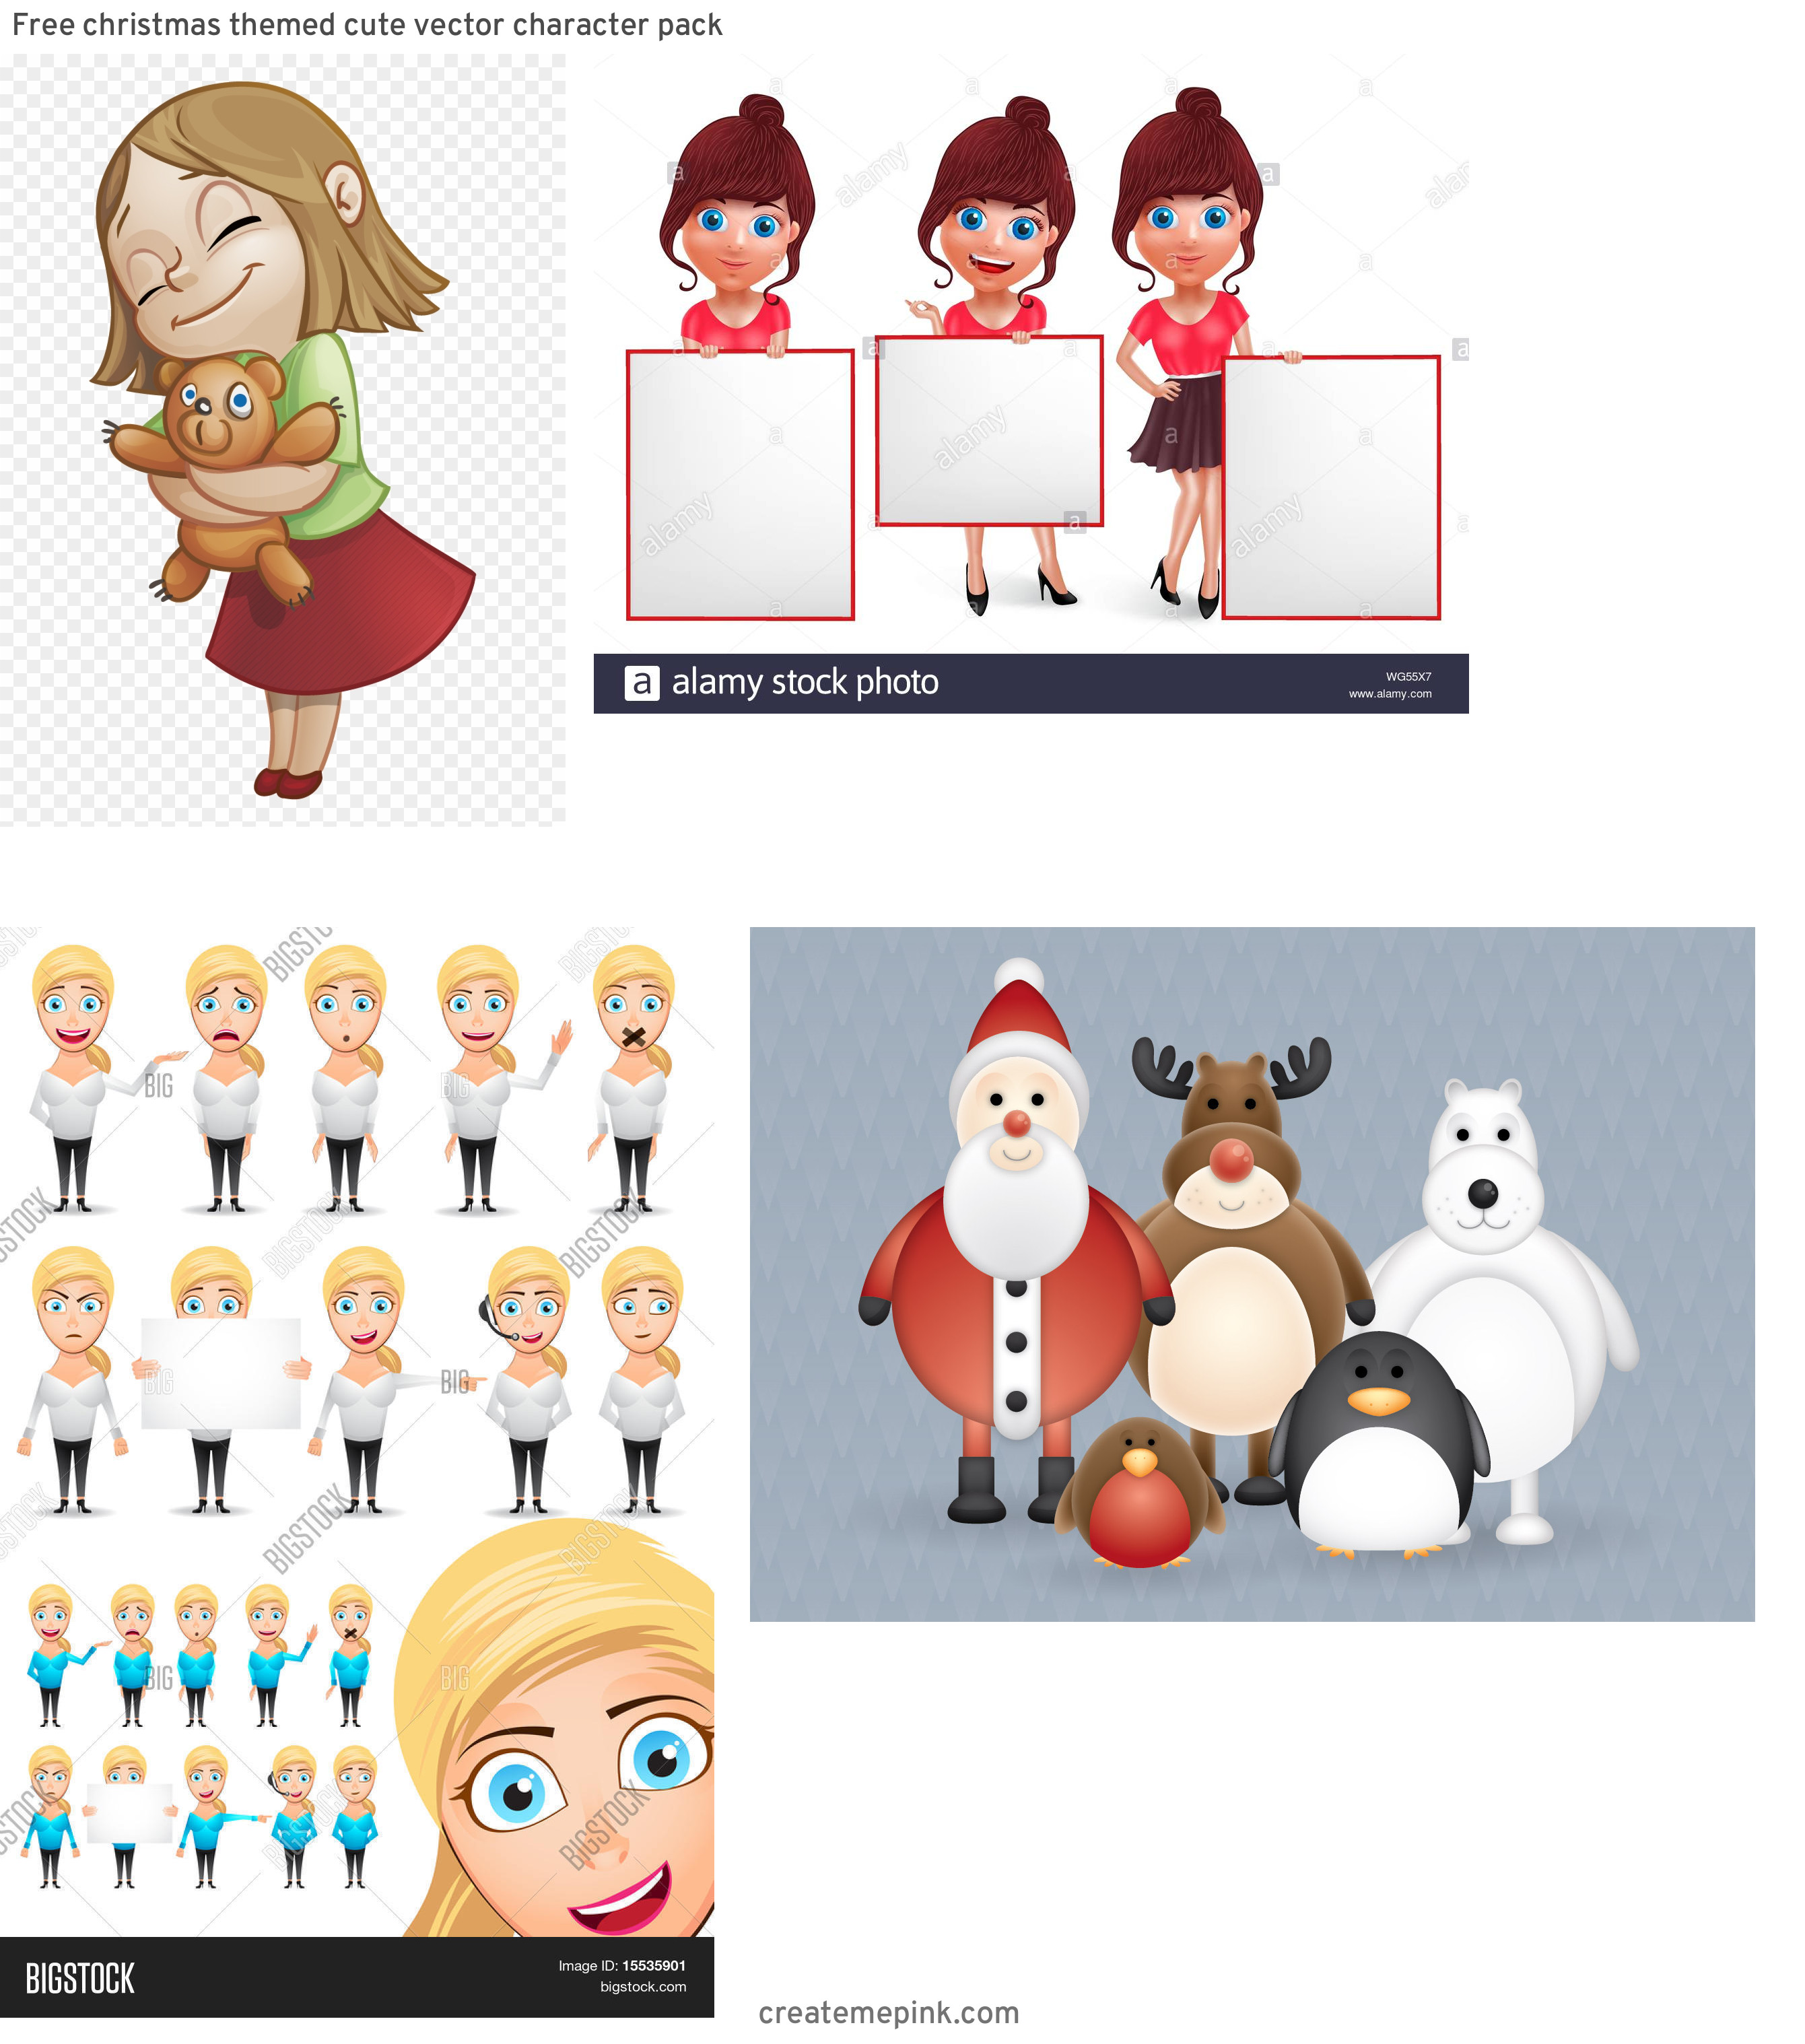 Vute Vector Character: Free Christmas Themed Cute Vector Character Pack